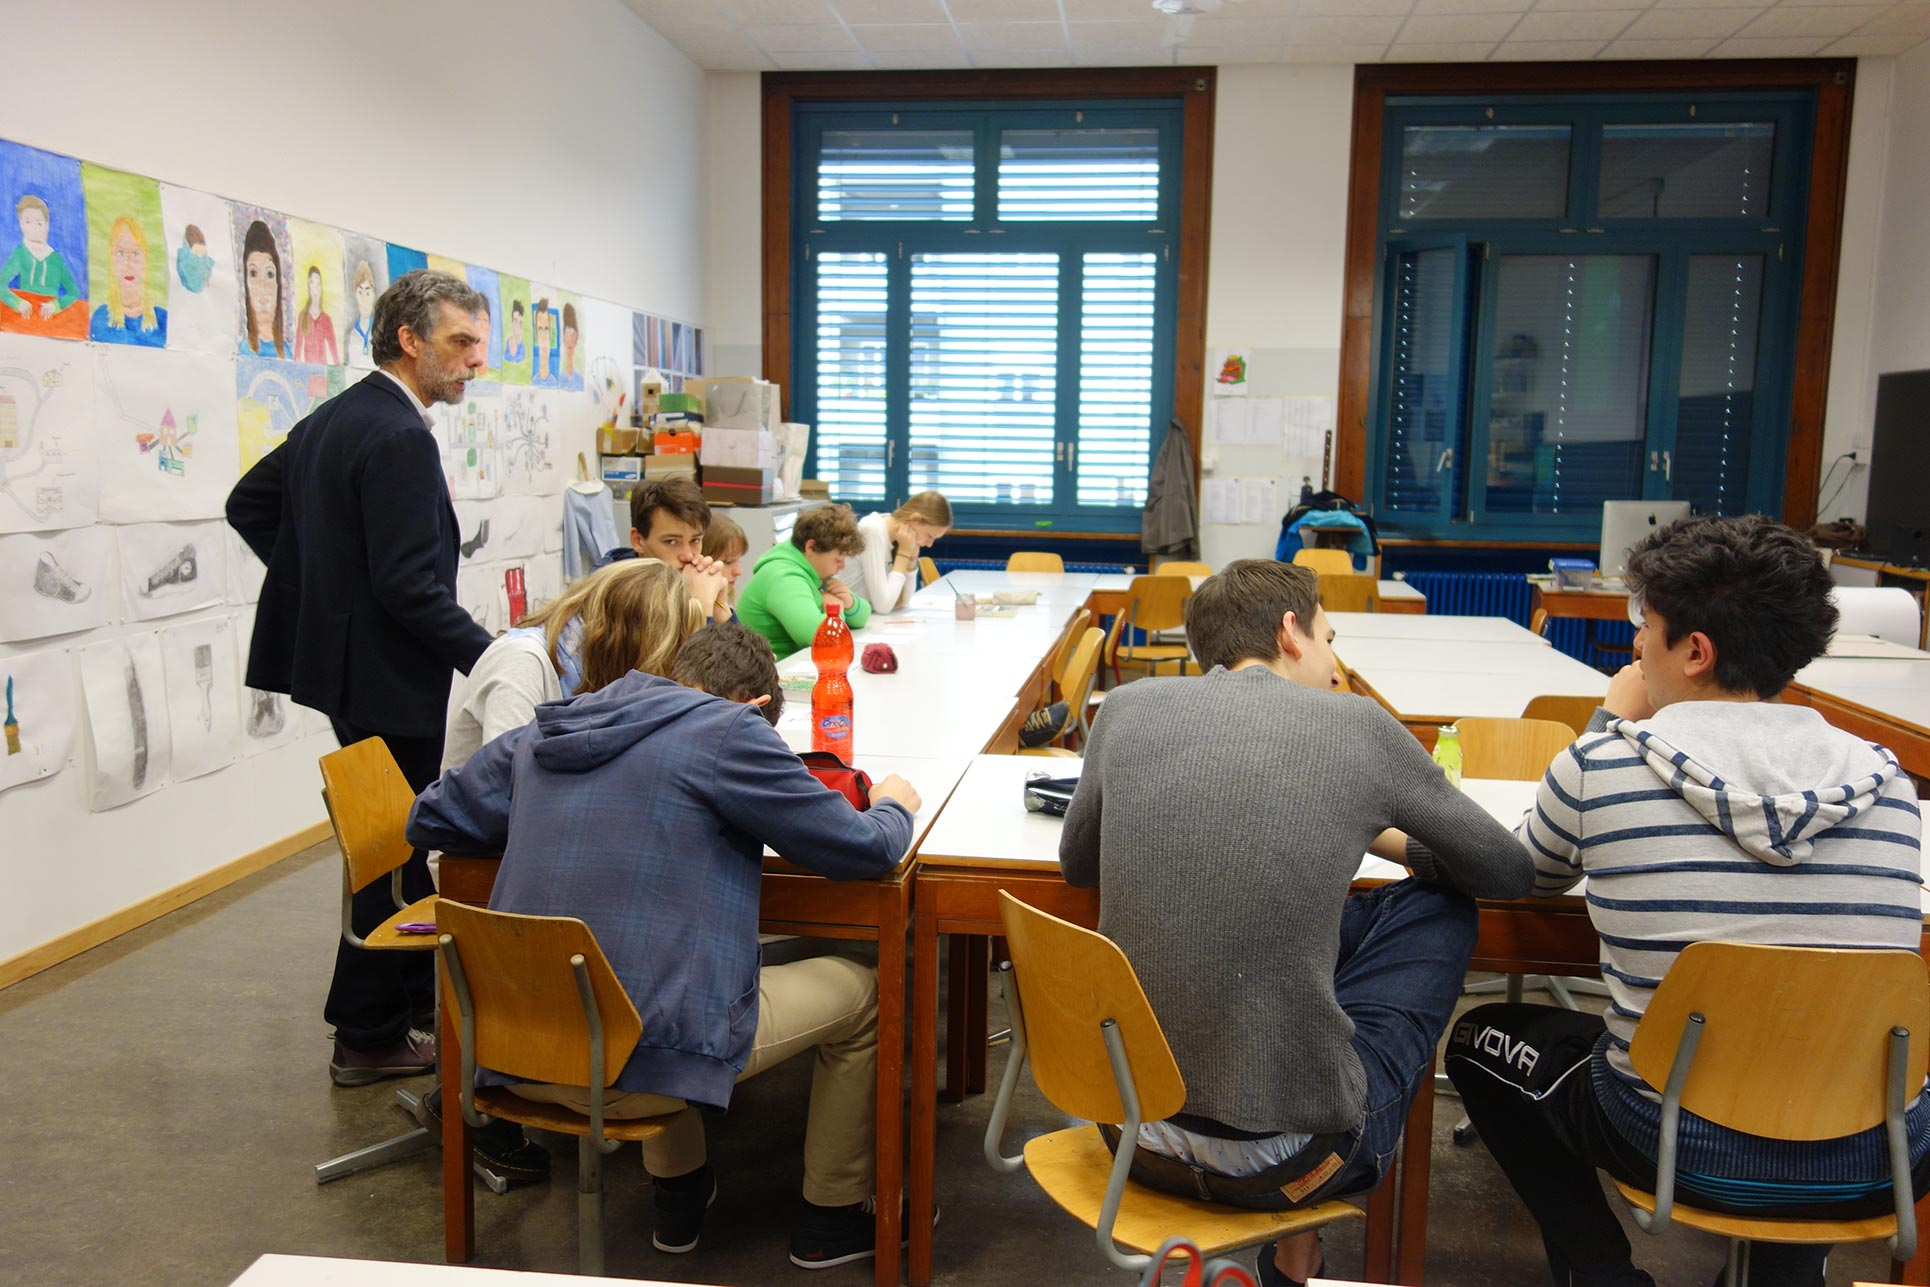 Beppe Giacobbe, illustrator, presenting his work and commenting on the pupils illustrations from a professional point of view (Photo: Barbara Fässler)